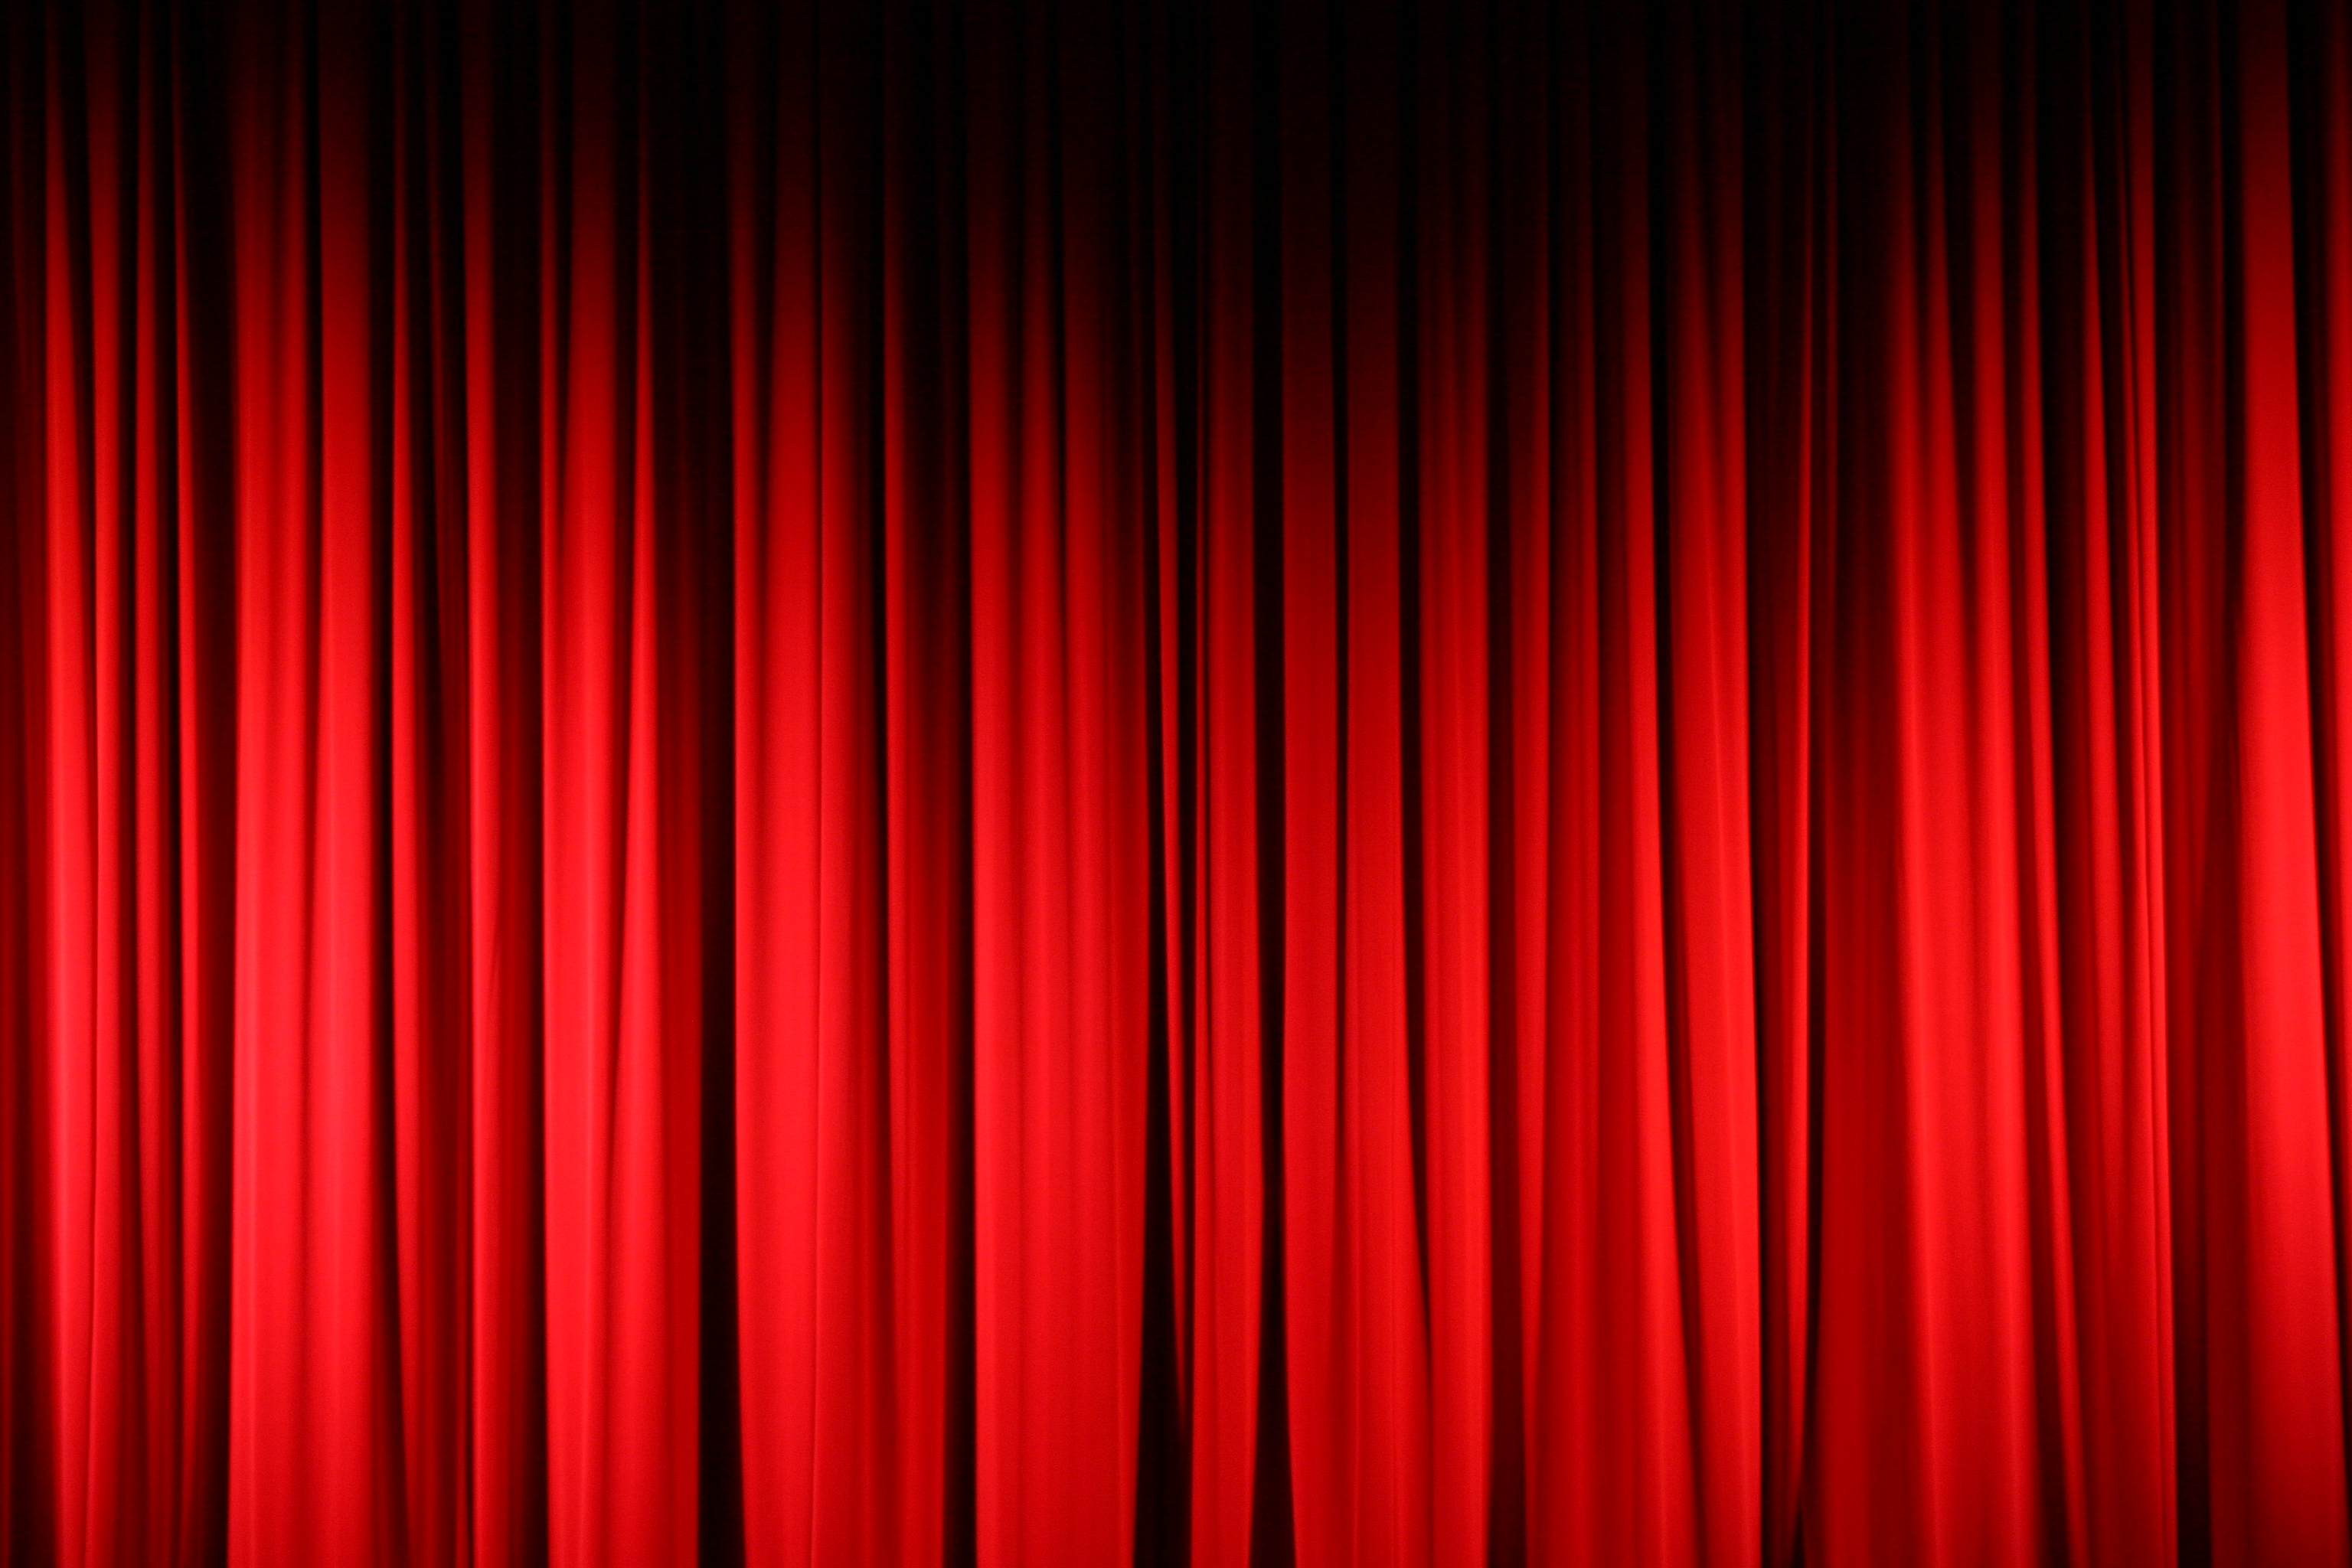 Curtain clipart red curtain Clipart Cliparts Red Inspiration Curtain